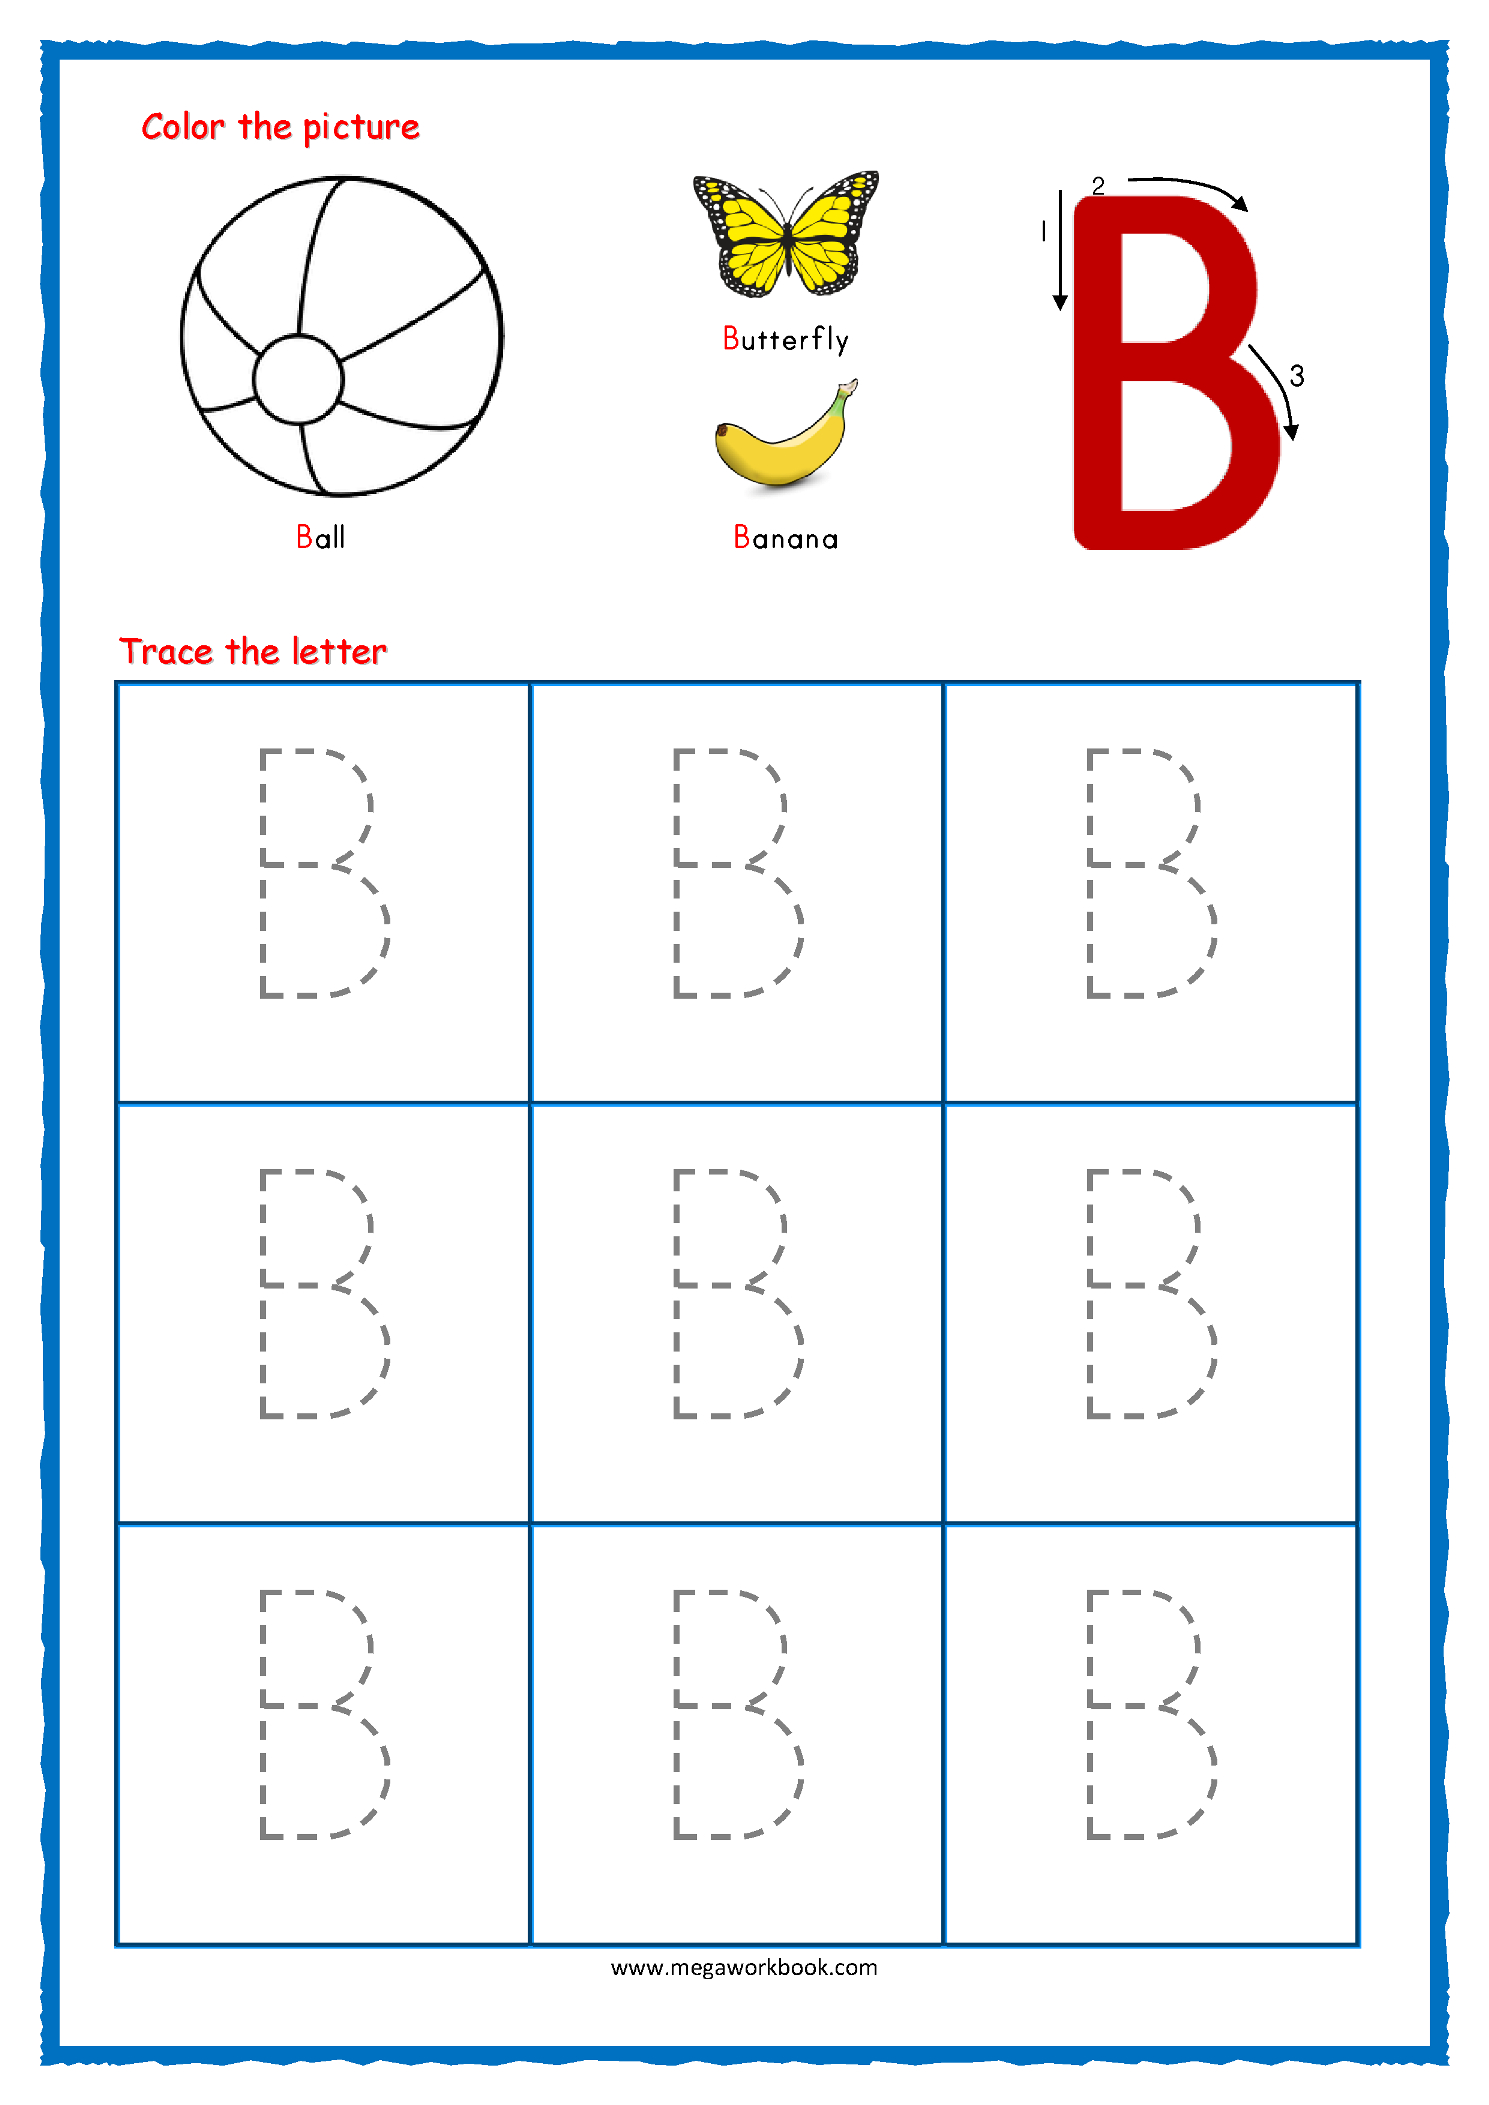 Tracing Letters - Alphabet Tracing - Capital Letters with Alphabet Tracing Worksheets B